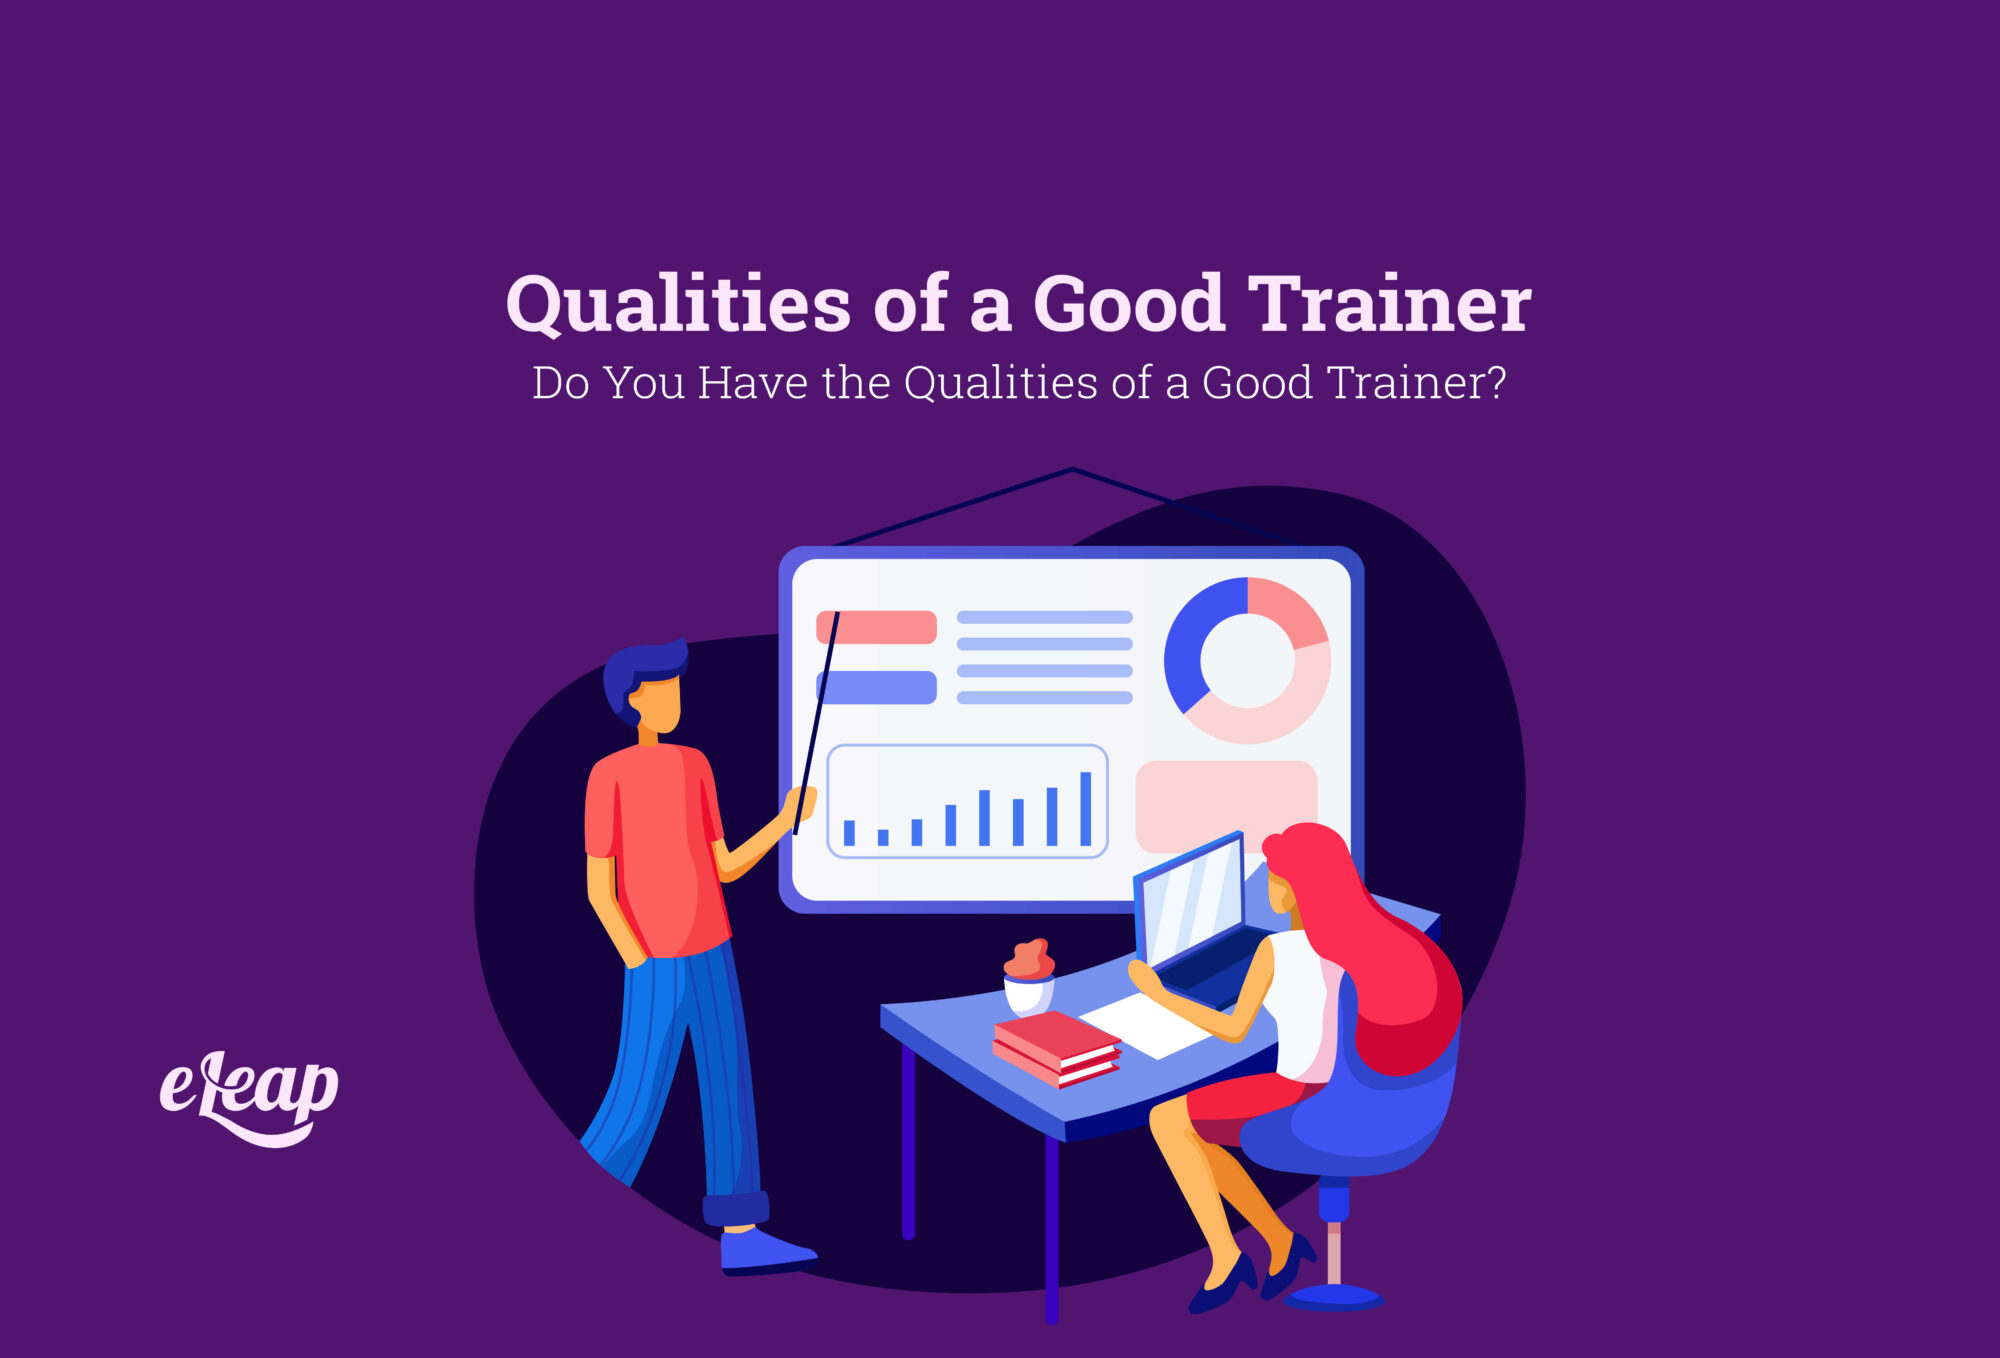 Qualities of a Good Trainer